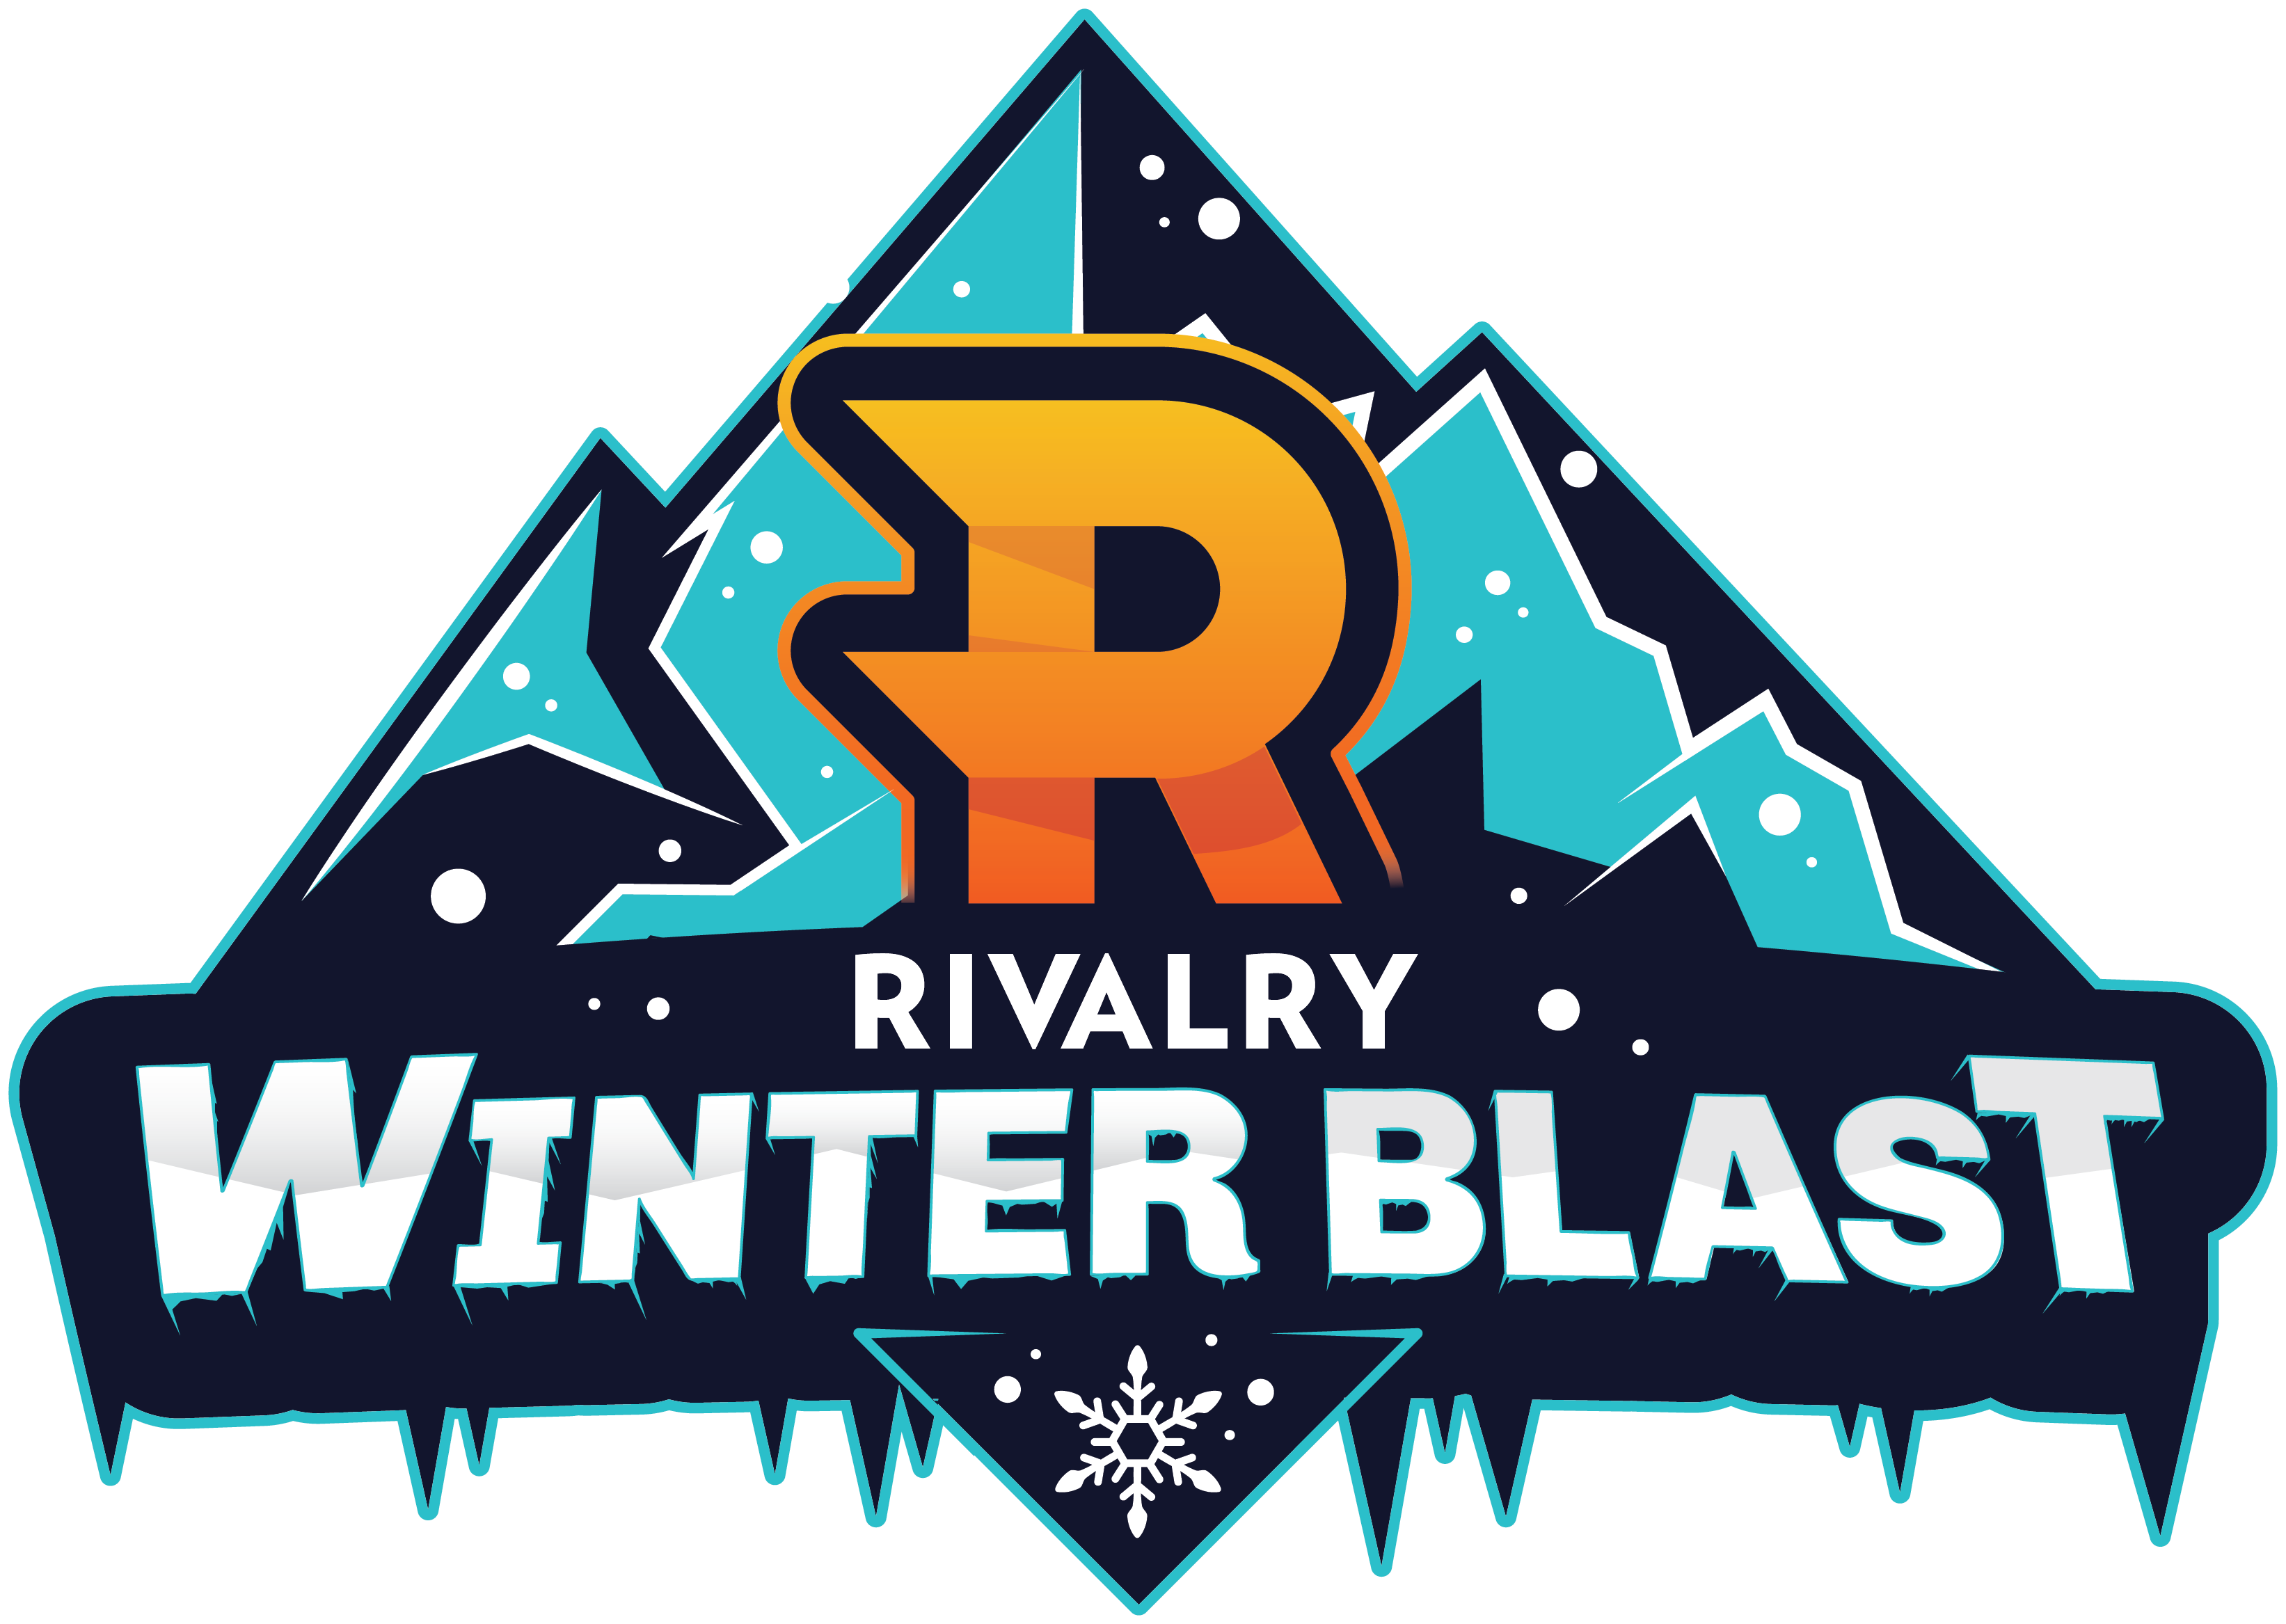 Rivalry Winter Blast Dota 2 Series